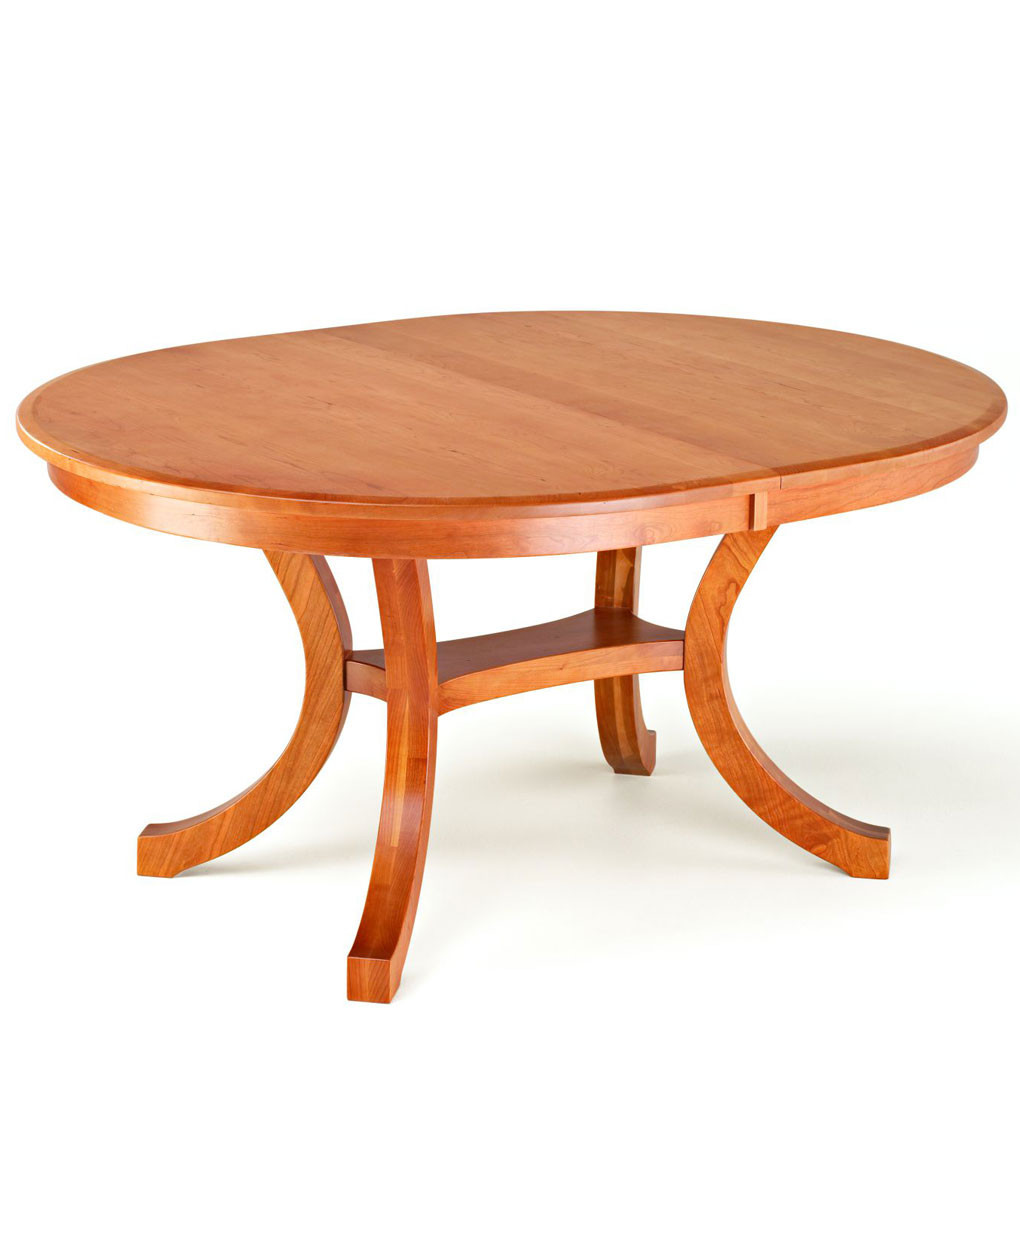 Best ideas about Oval Dining Table . Save or Pin Oval Carlisle Dining Table Amish Direct Furniture Now.